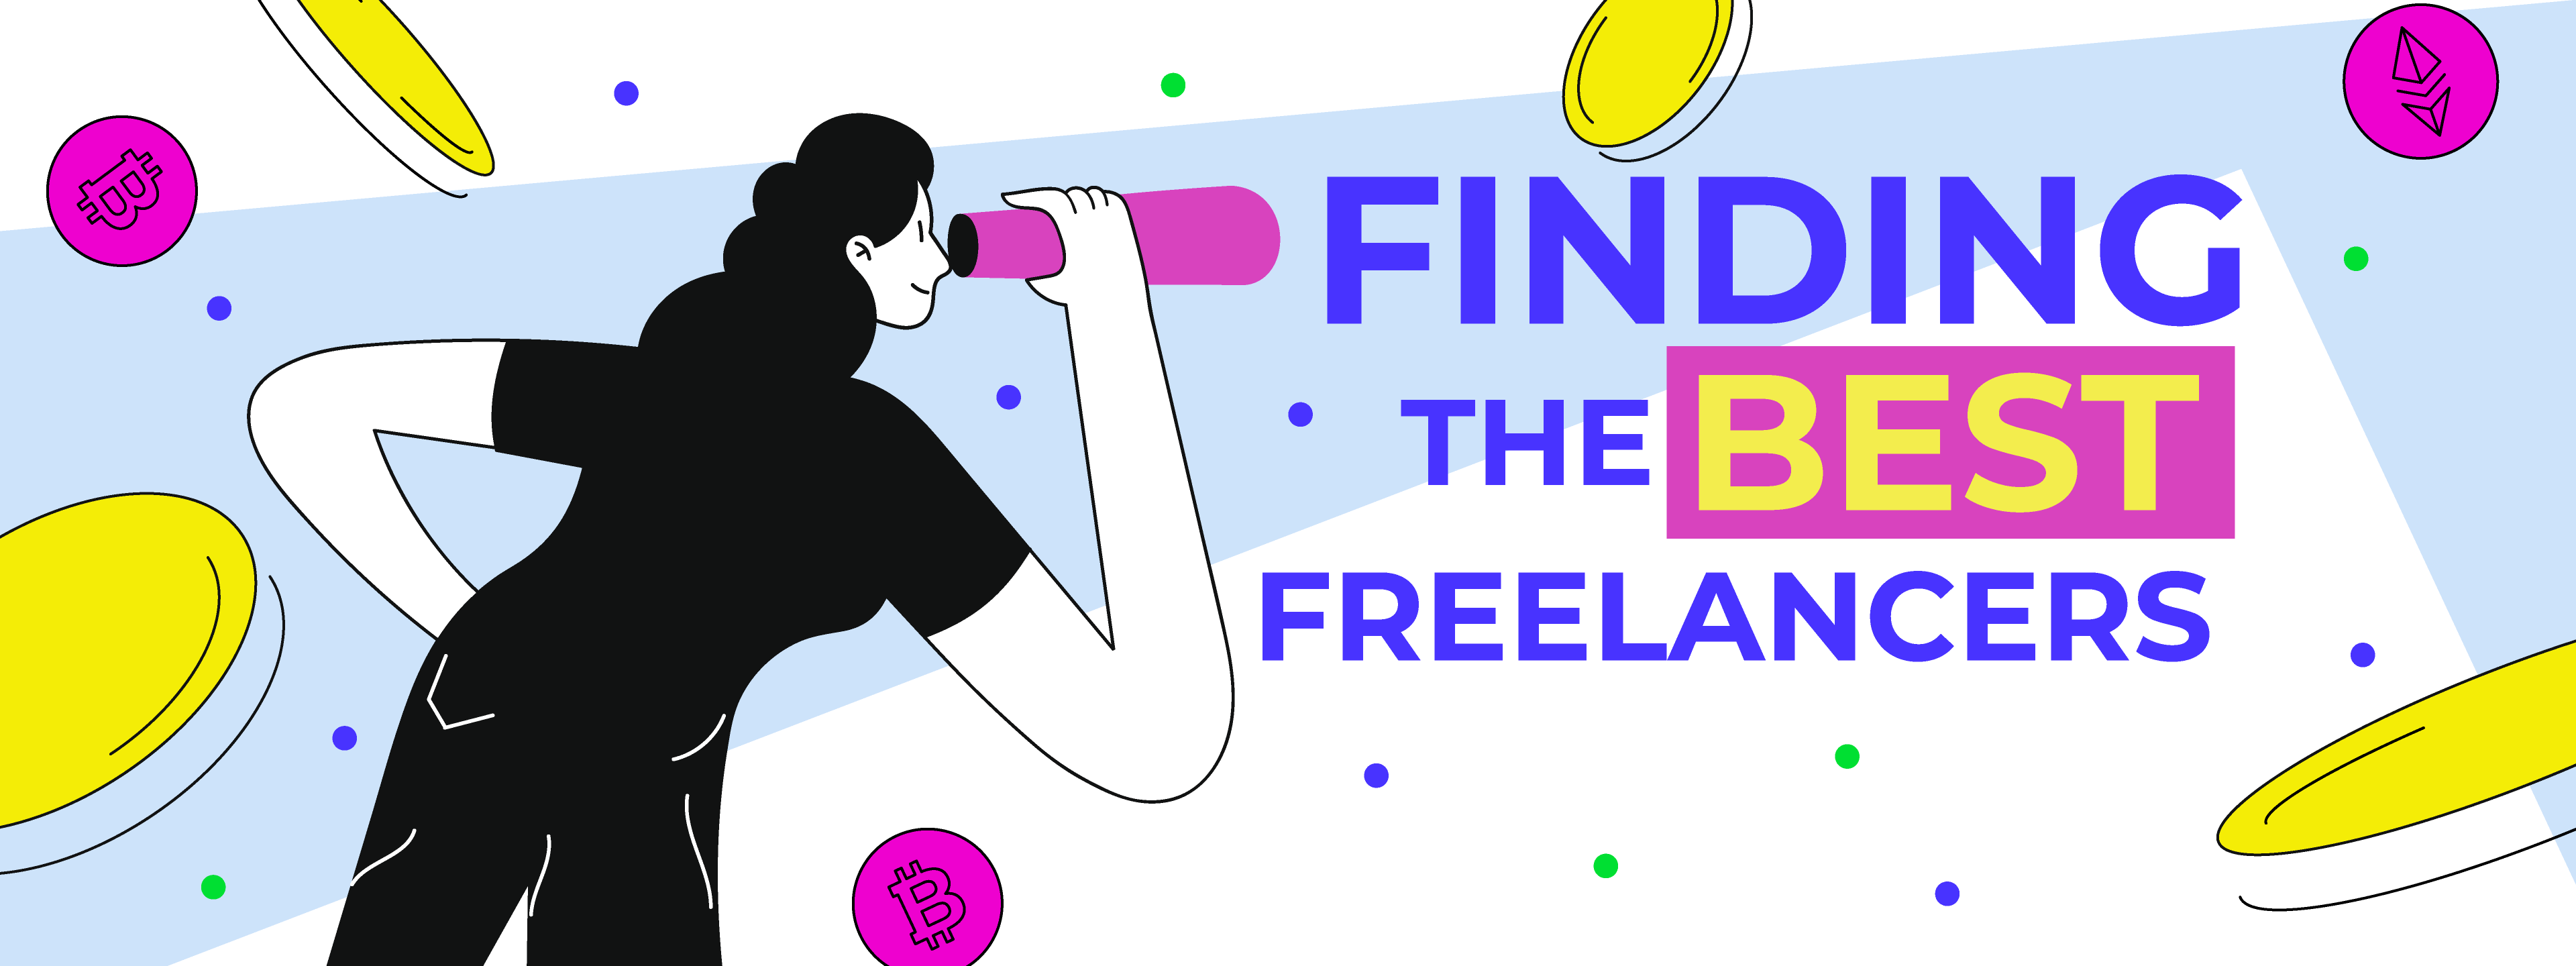 How To Find The Best Freelancer For Your Job